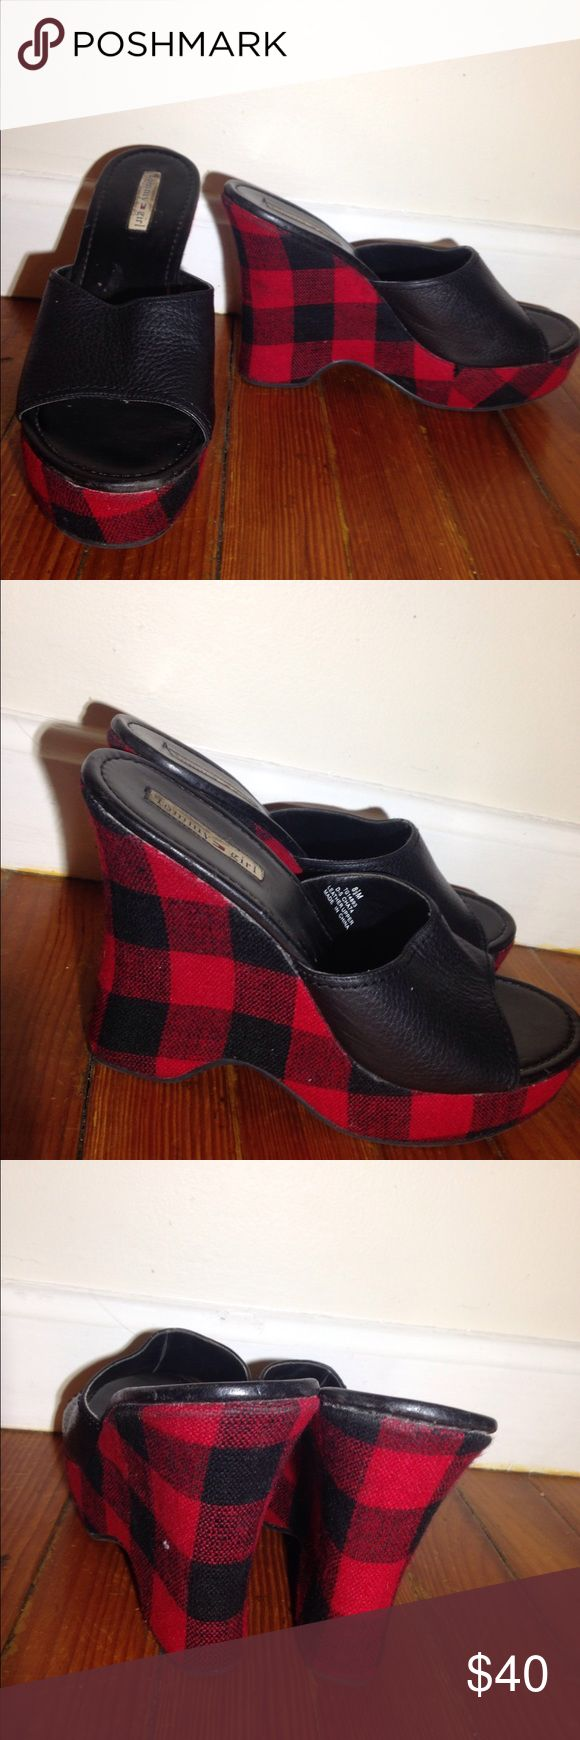 Tommy Hilfiger heels size 8.5 Size 8.5 Tommy Girl Wedge heels w plaid pattern red and black ! Excellent condition ! Super cute for formal casual events parties dinners work office after work wear spring summer fall winter Tommy Hilfiger Shoes Heels